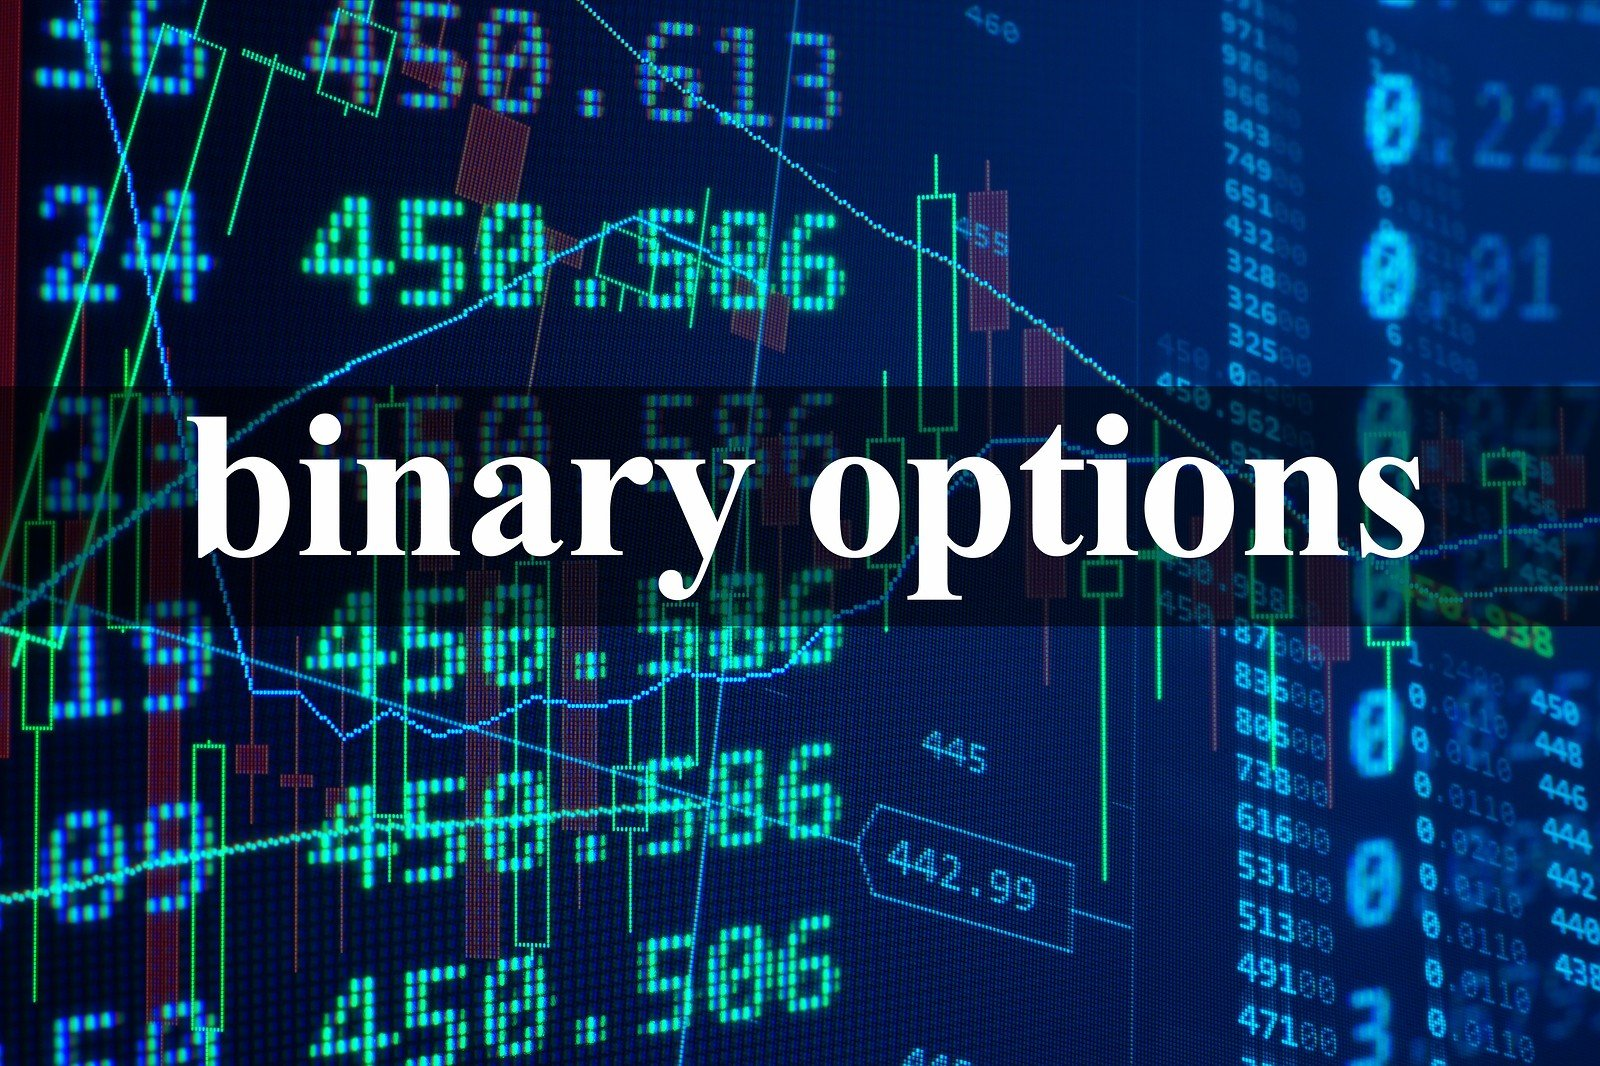 Binary options mbfx